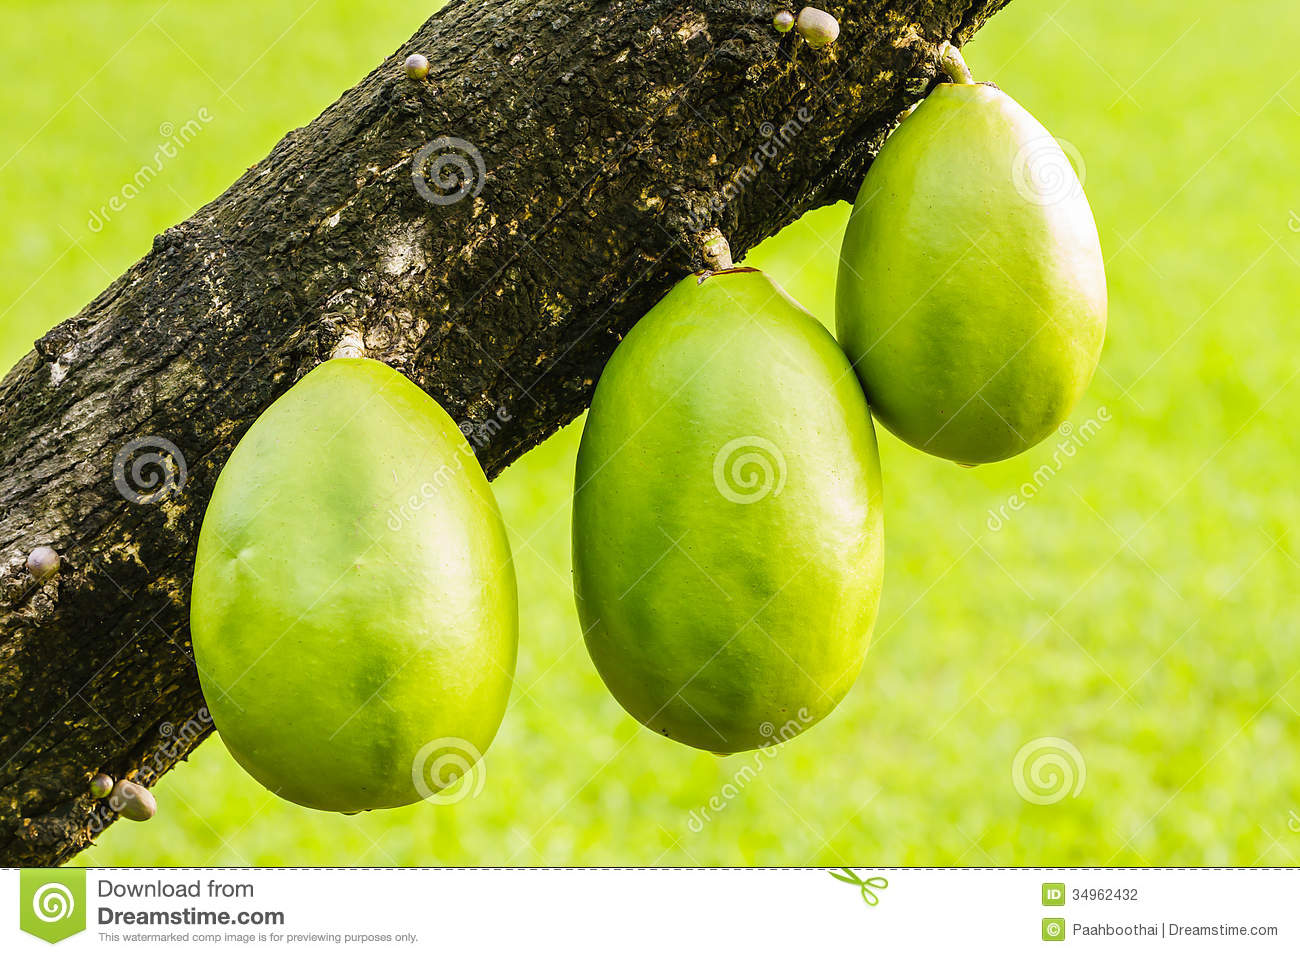 Fruit From Trunk Of Gourd Tree Stock Photography - Image: 34962432